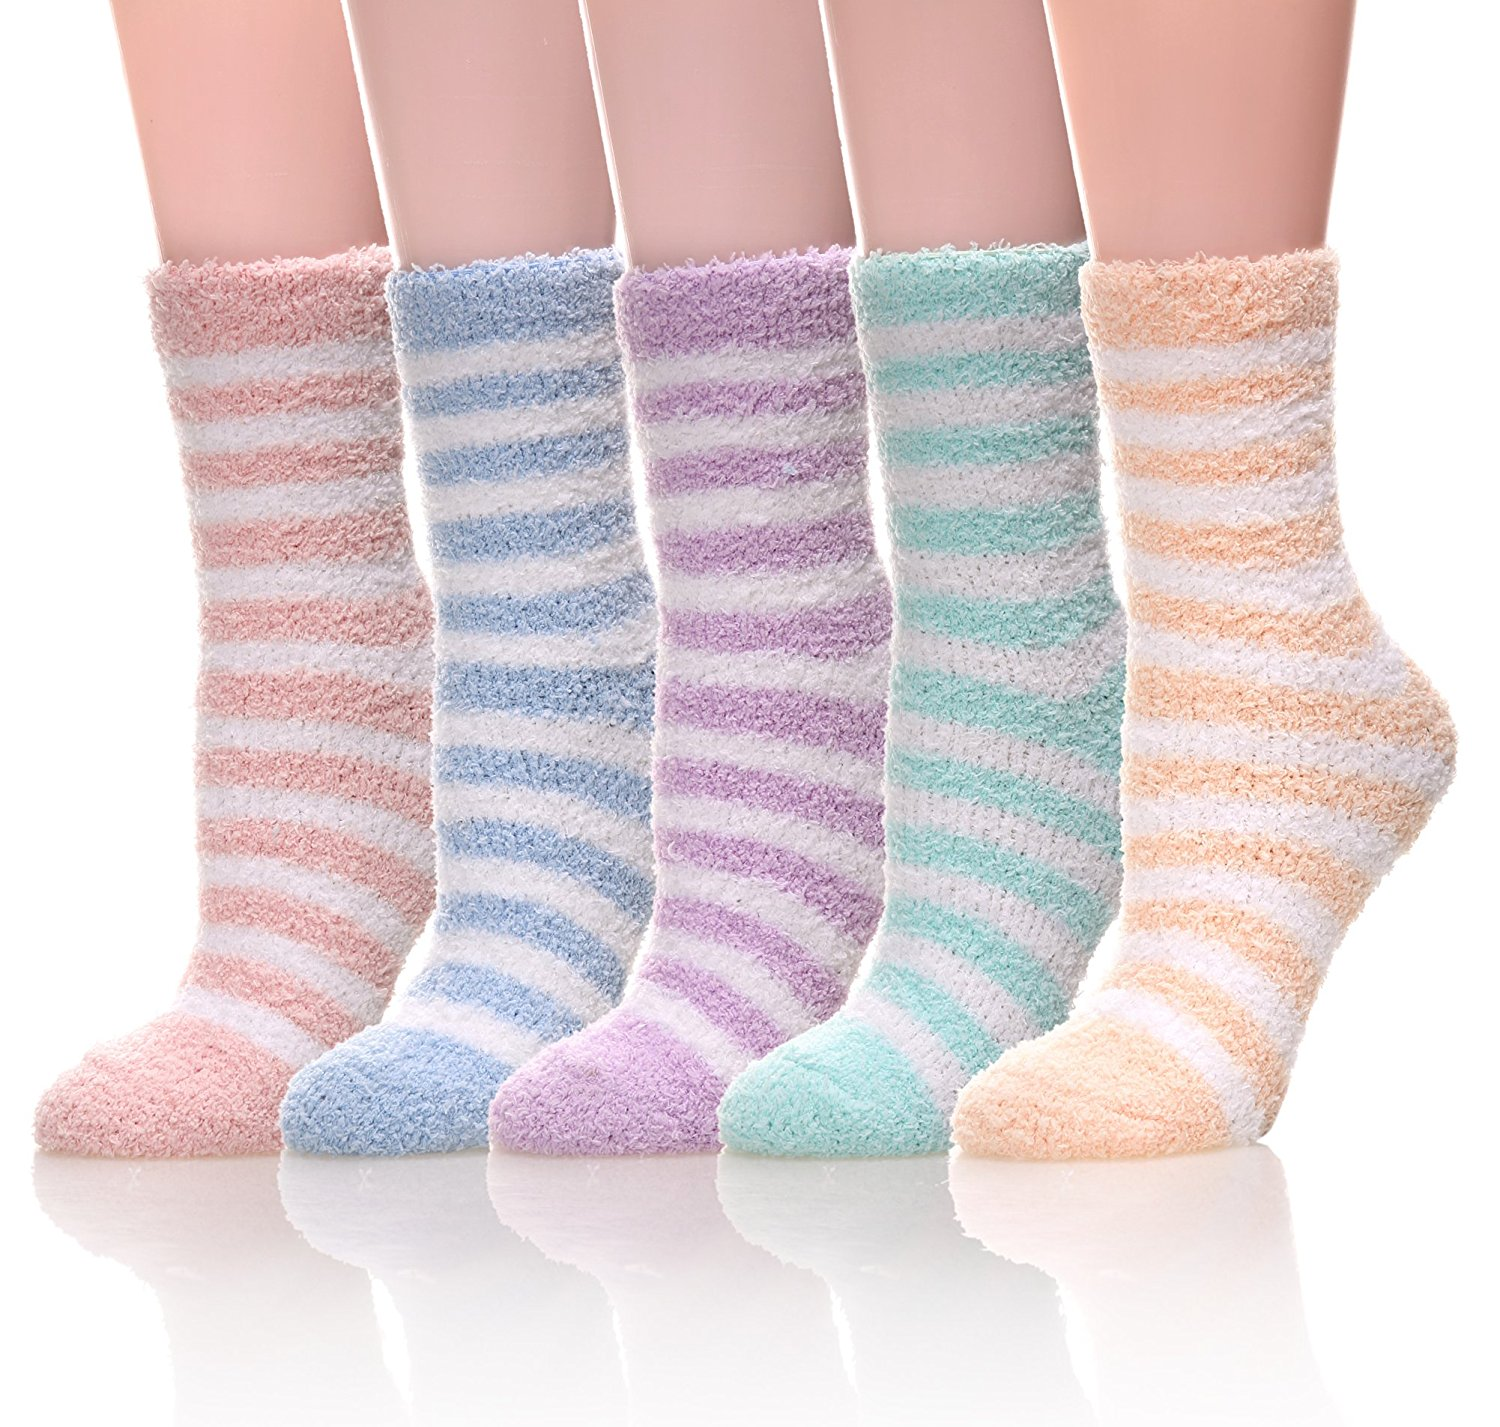 WENER Women's 5 pairs Super Soft Fuzzy Winter Warm Crew Slipper Socks